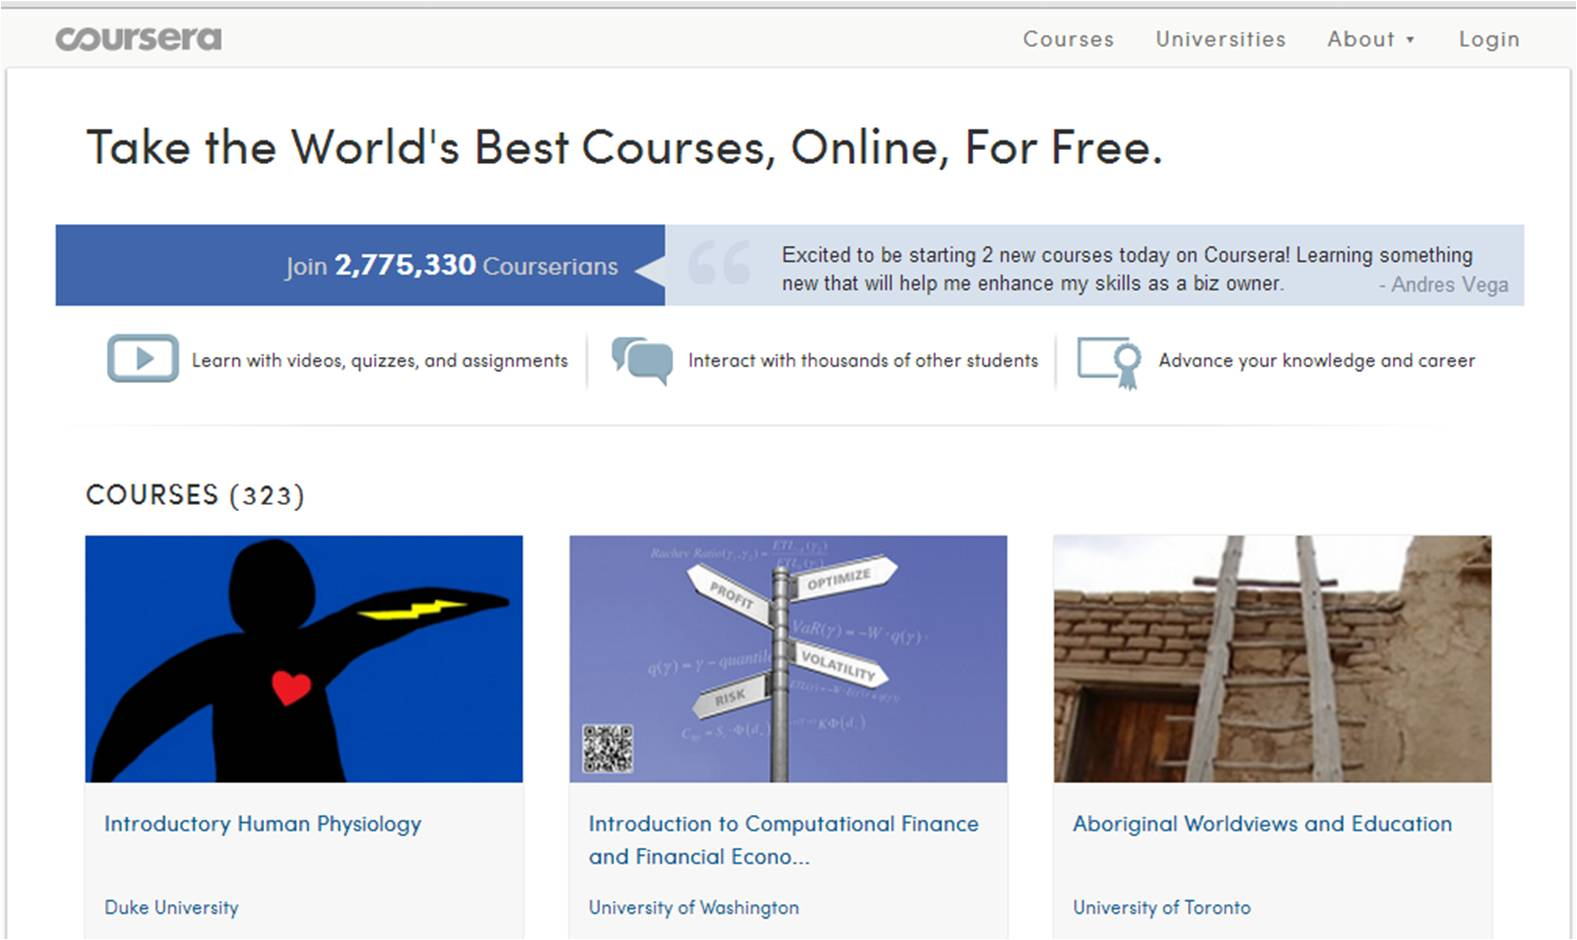 Coursera free online learning could get you a job at Twitter